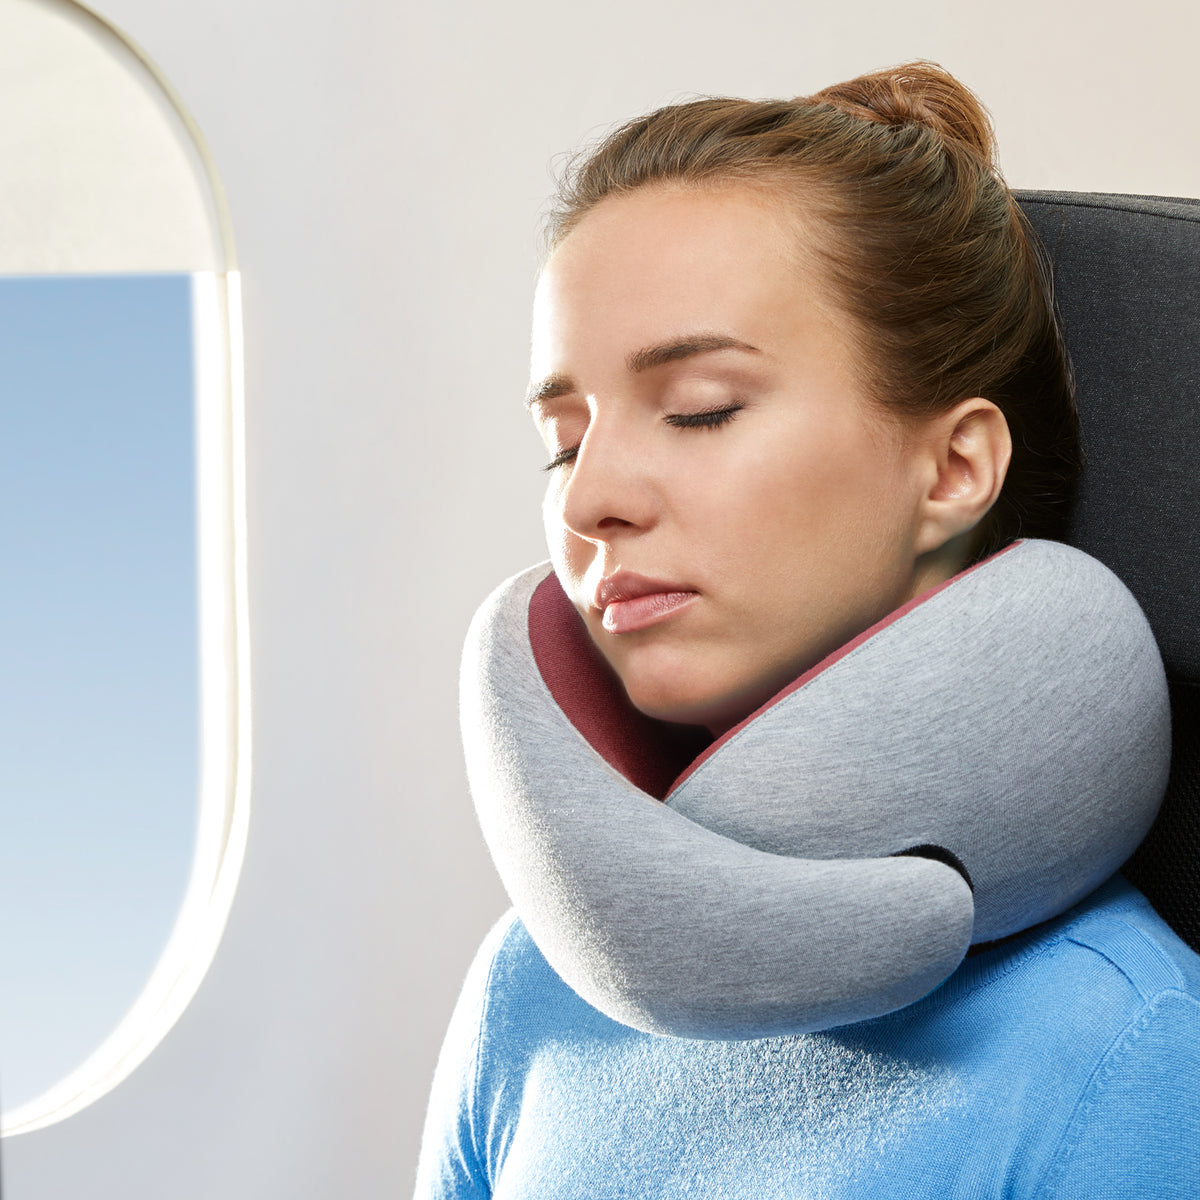 Woman Sleeping On Plane With Dreamtastic Neck Pillow.